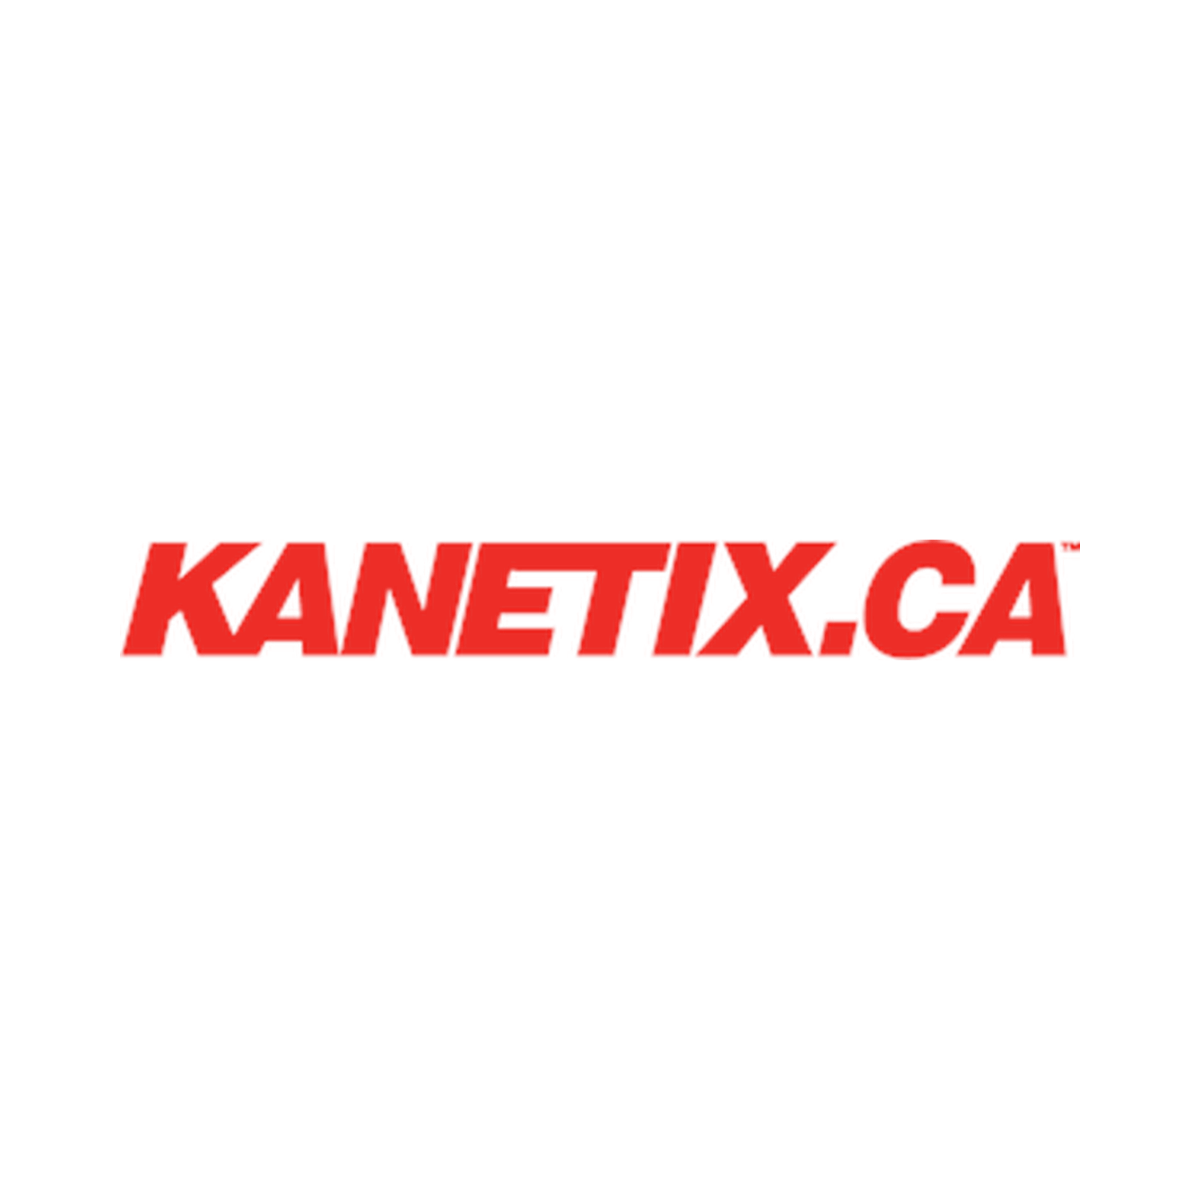 Kanetix Review